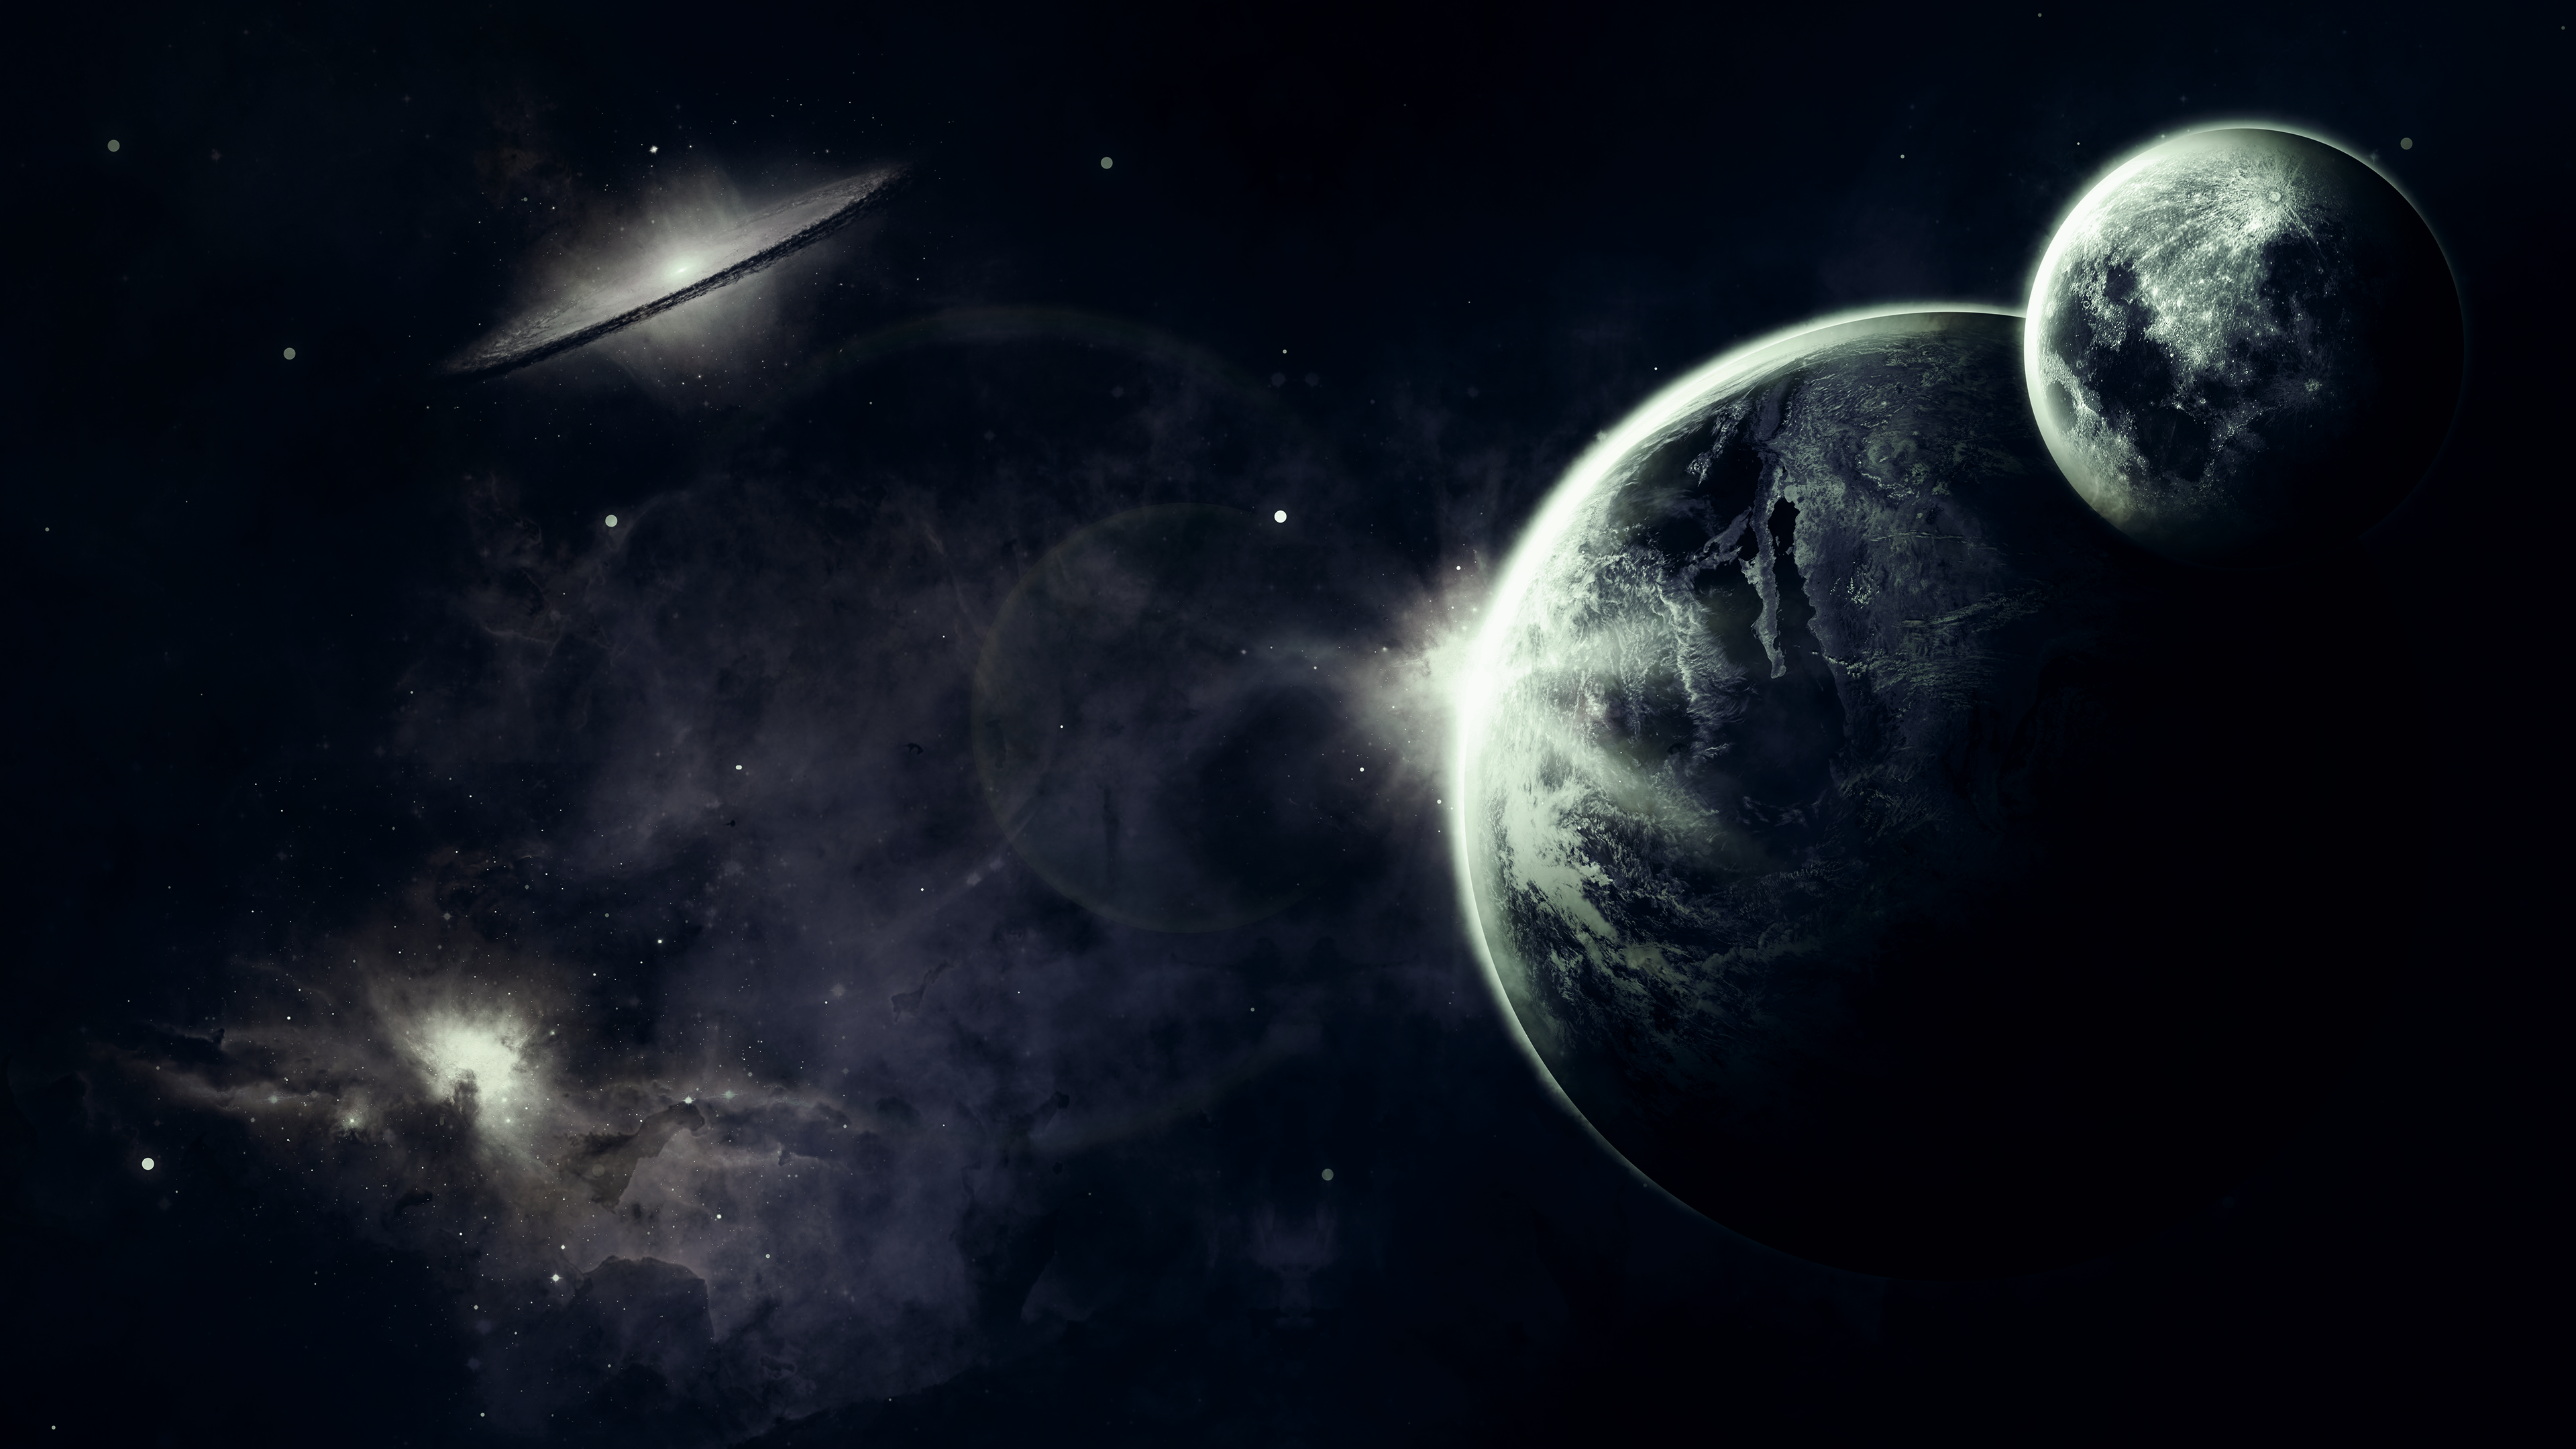 Dark Space 4k Wallpaper Download Dark Space 4k Wallpaper Download